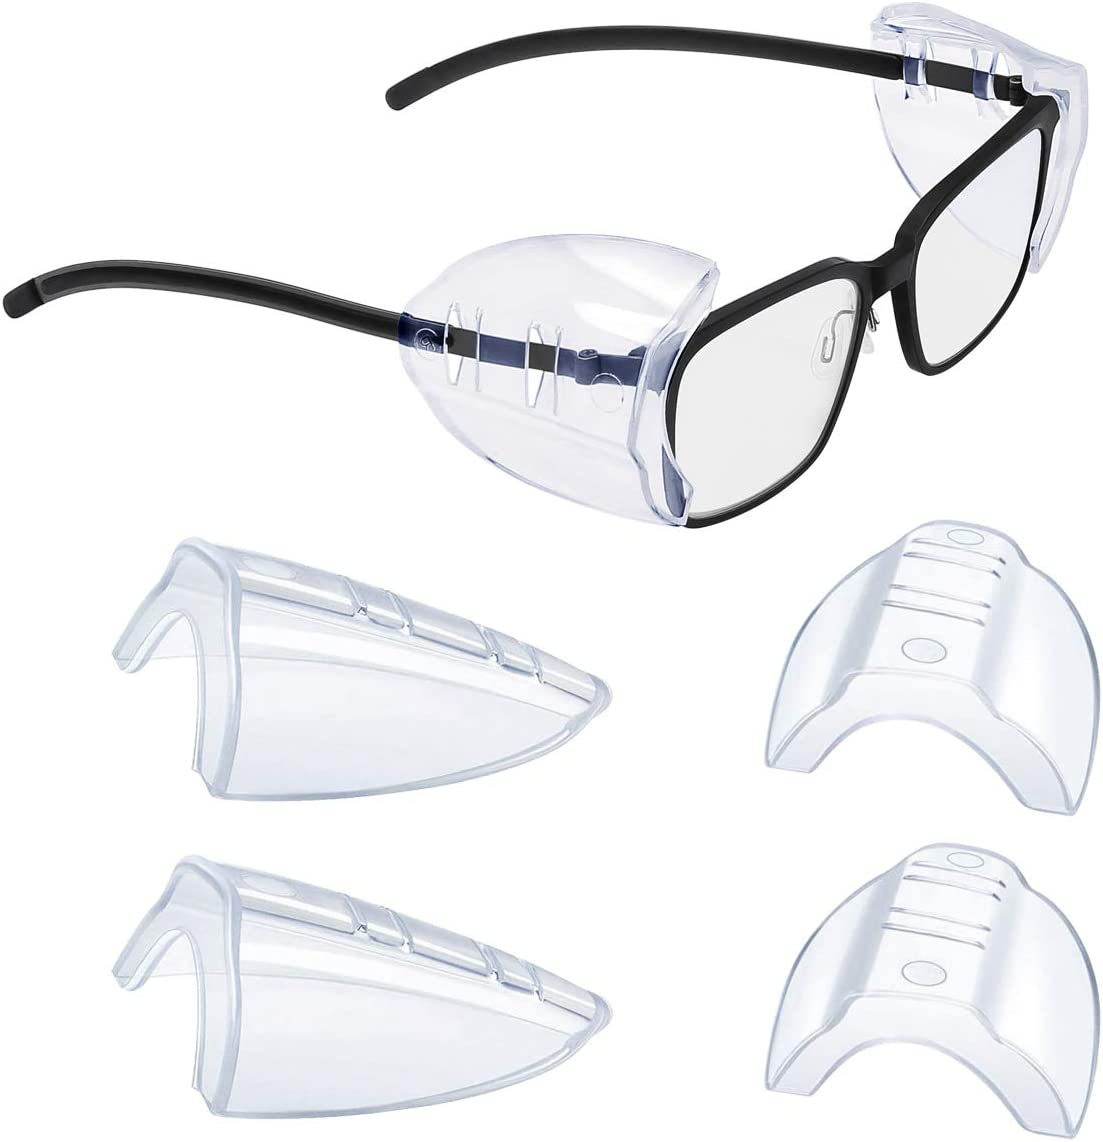 2 2//4//6//10 Pairs Glasses Side Shields for Eye Glasses,Safety Glasses with Side for Eye Protection-Fits Small to Medium Eyeglasses